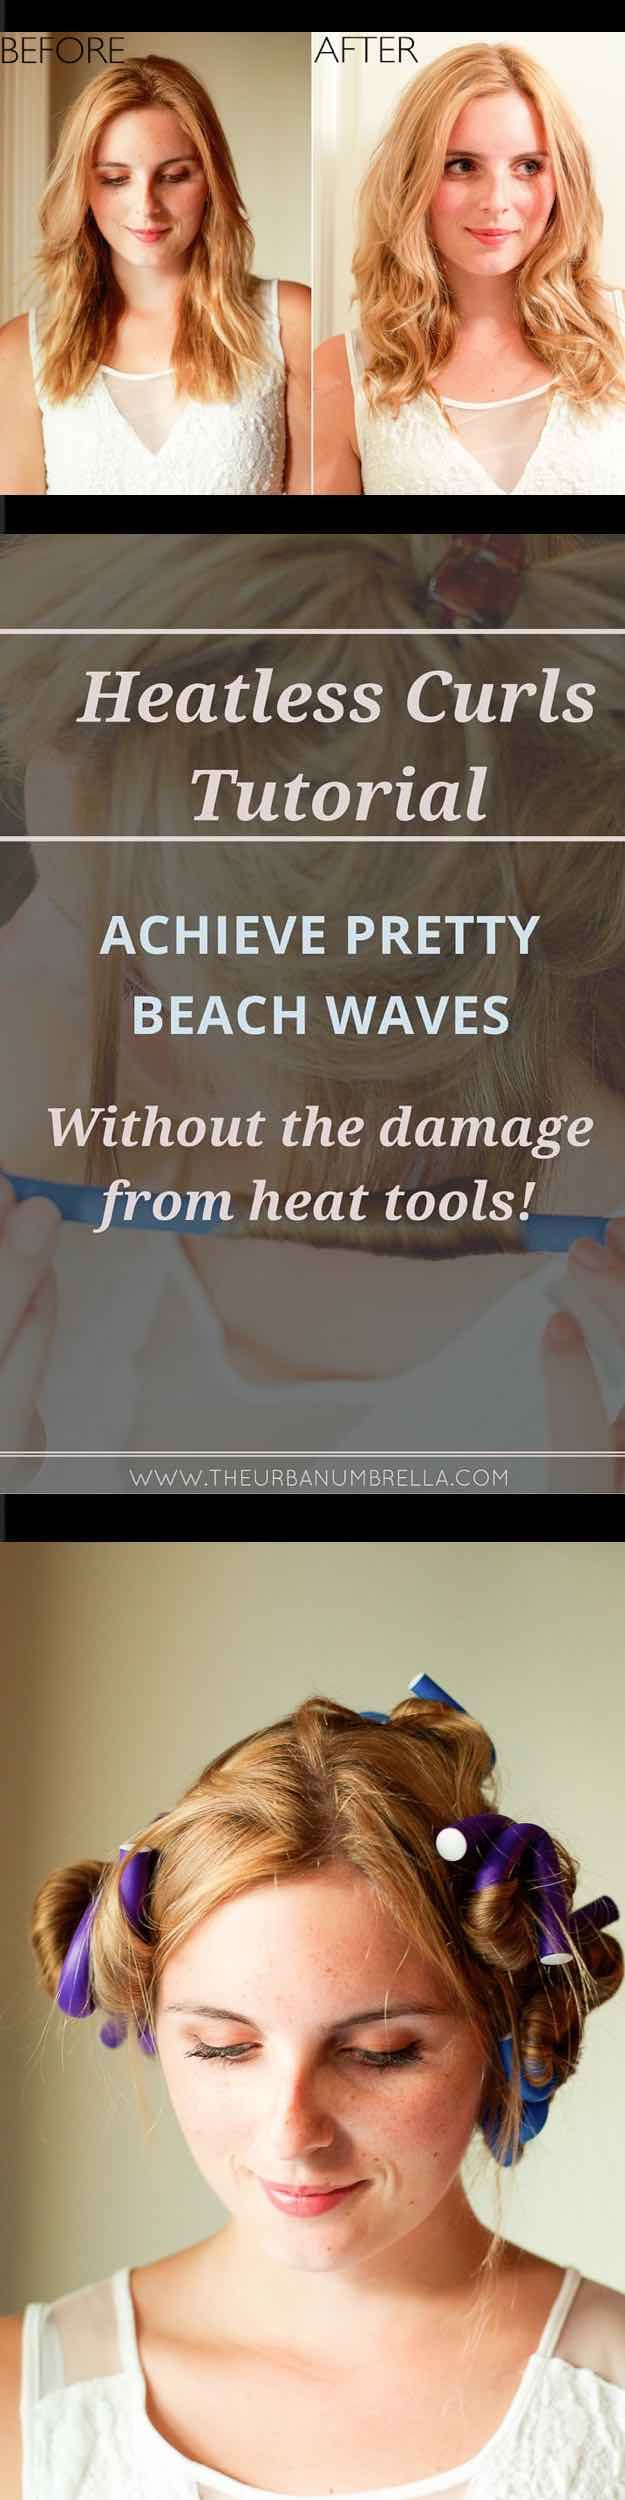 Easy Beachy Waves Tutorials for Hair - Easy Heartless Beach Waves - DIY And Easy...